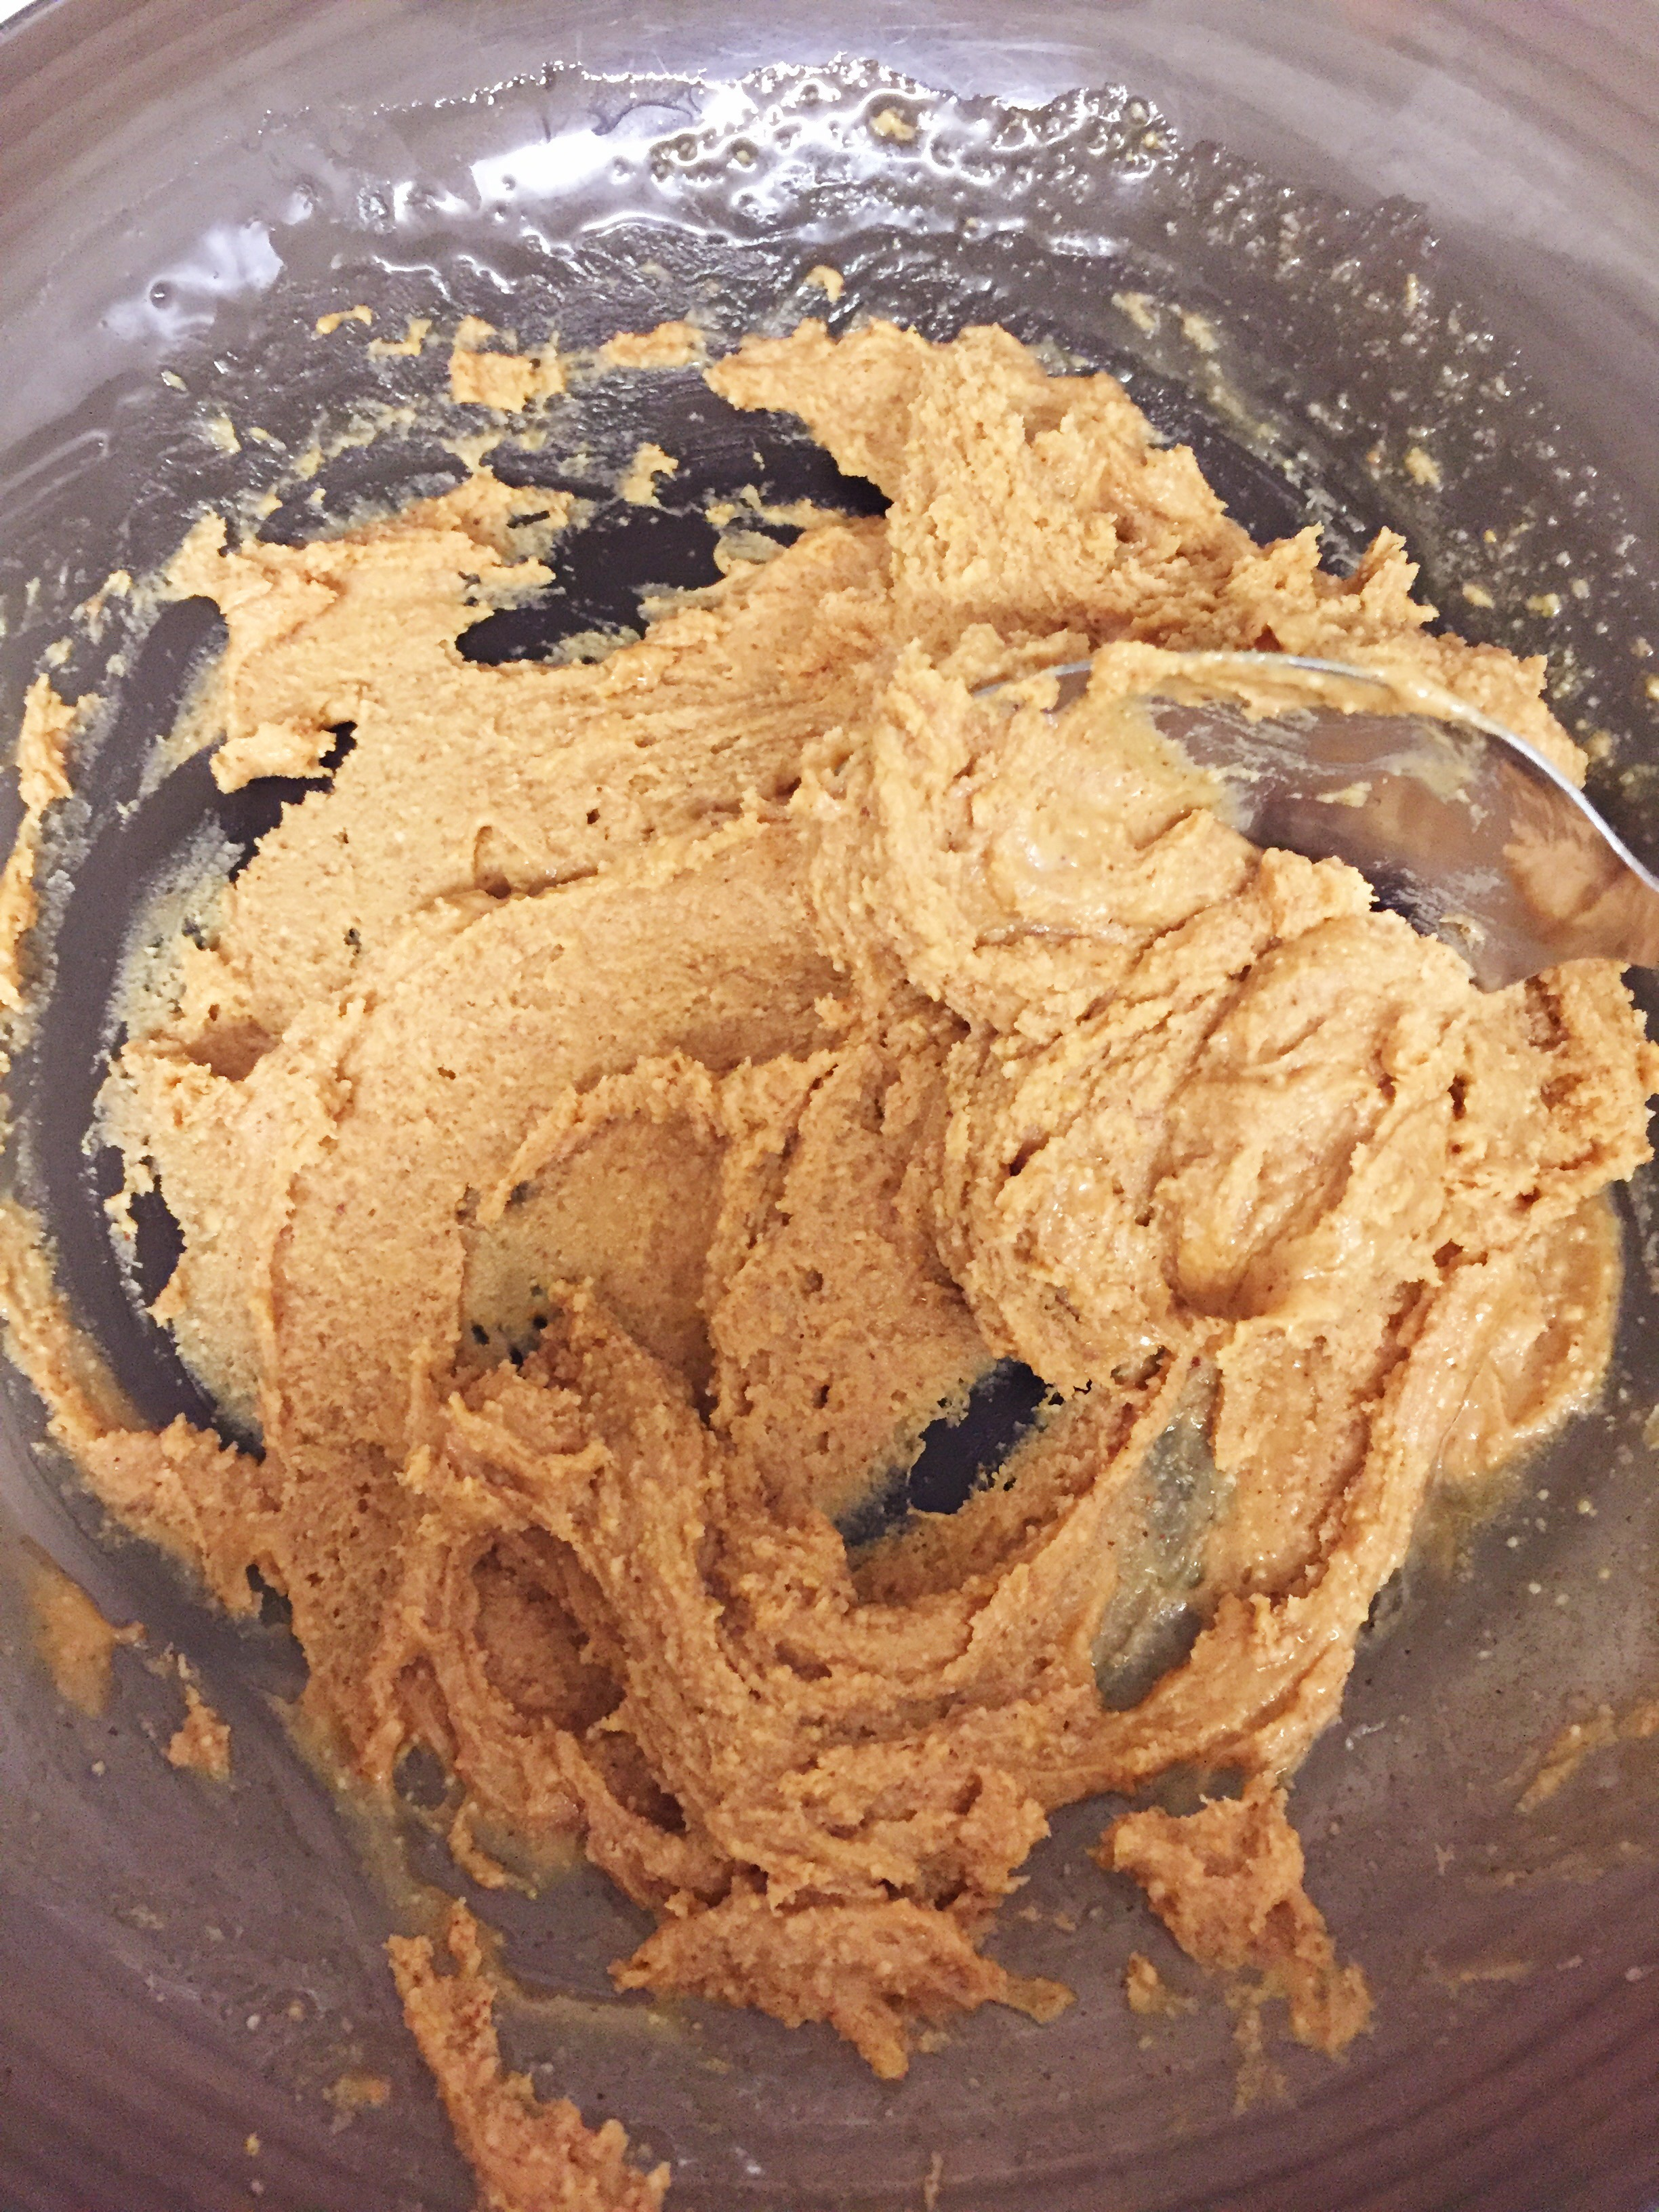 Peanut butter and honey mixture